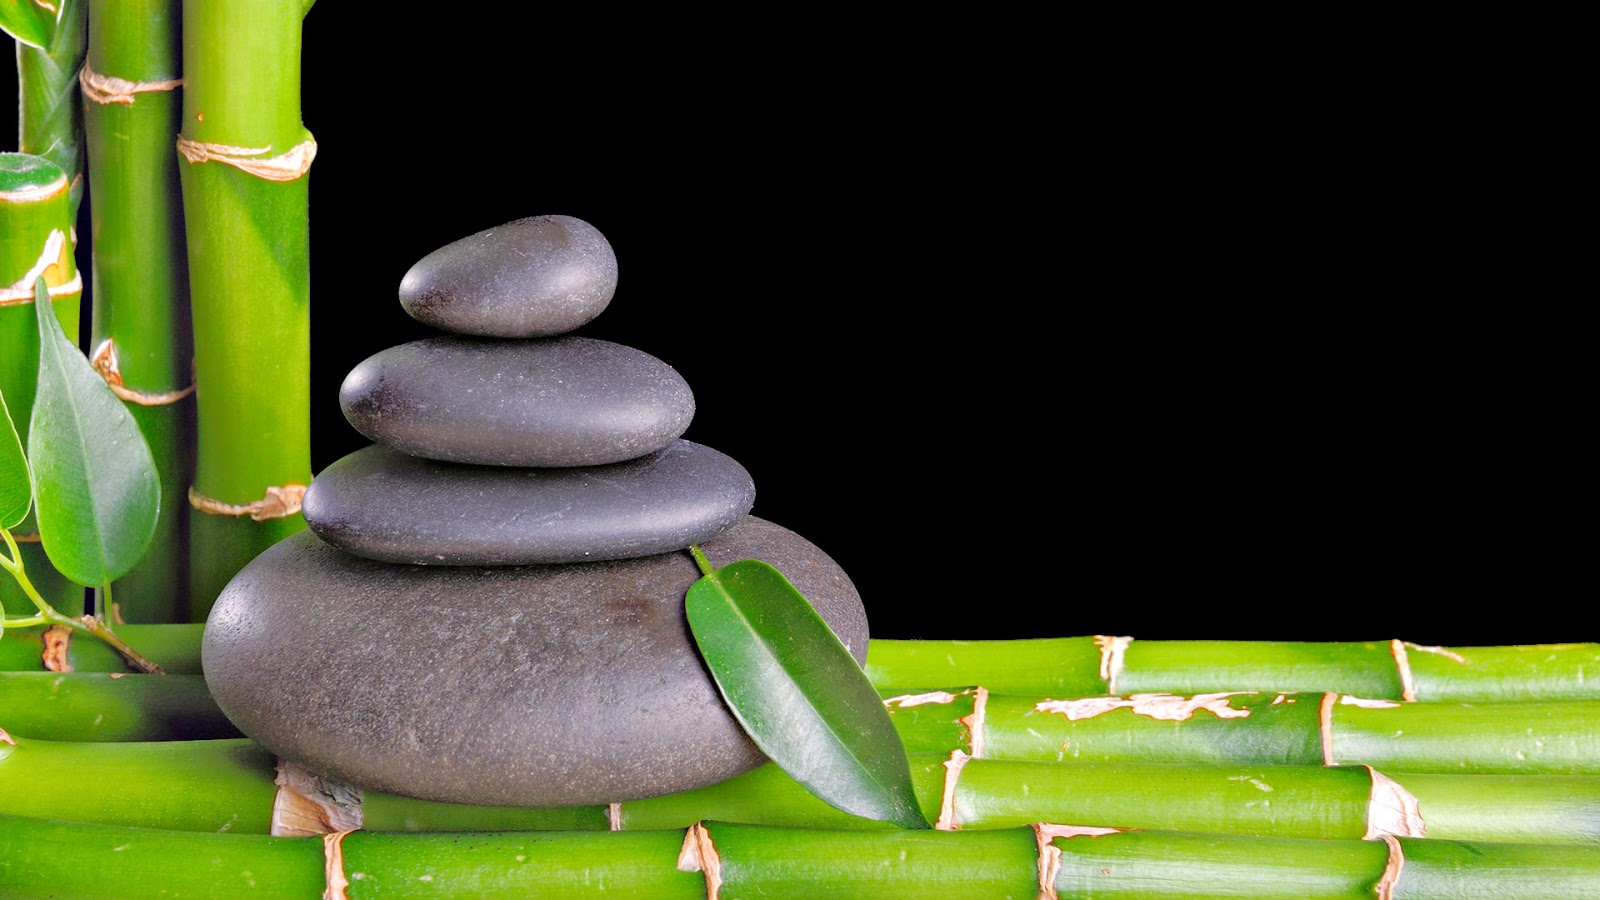 Zen-Bamboo-leaf-with-black-stone-wallpapers.jpg